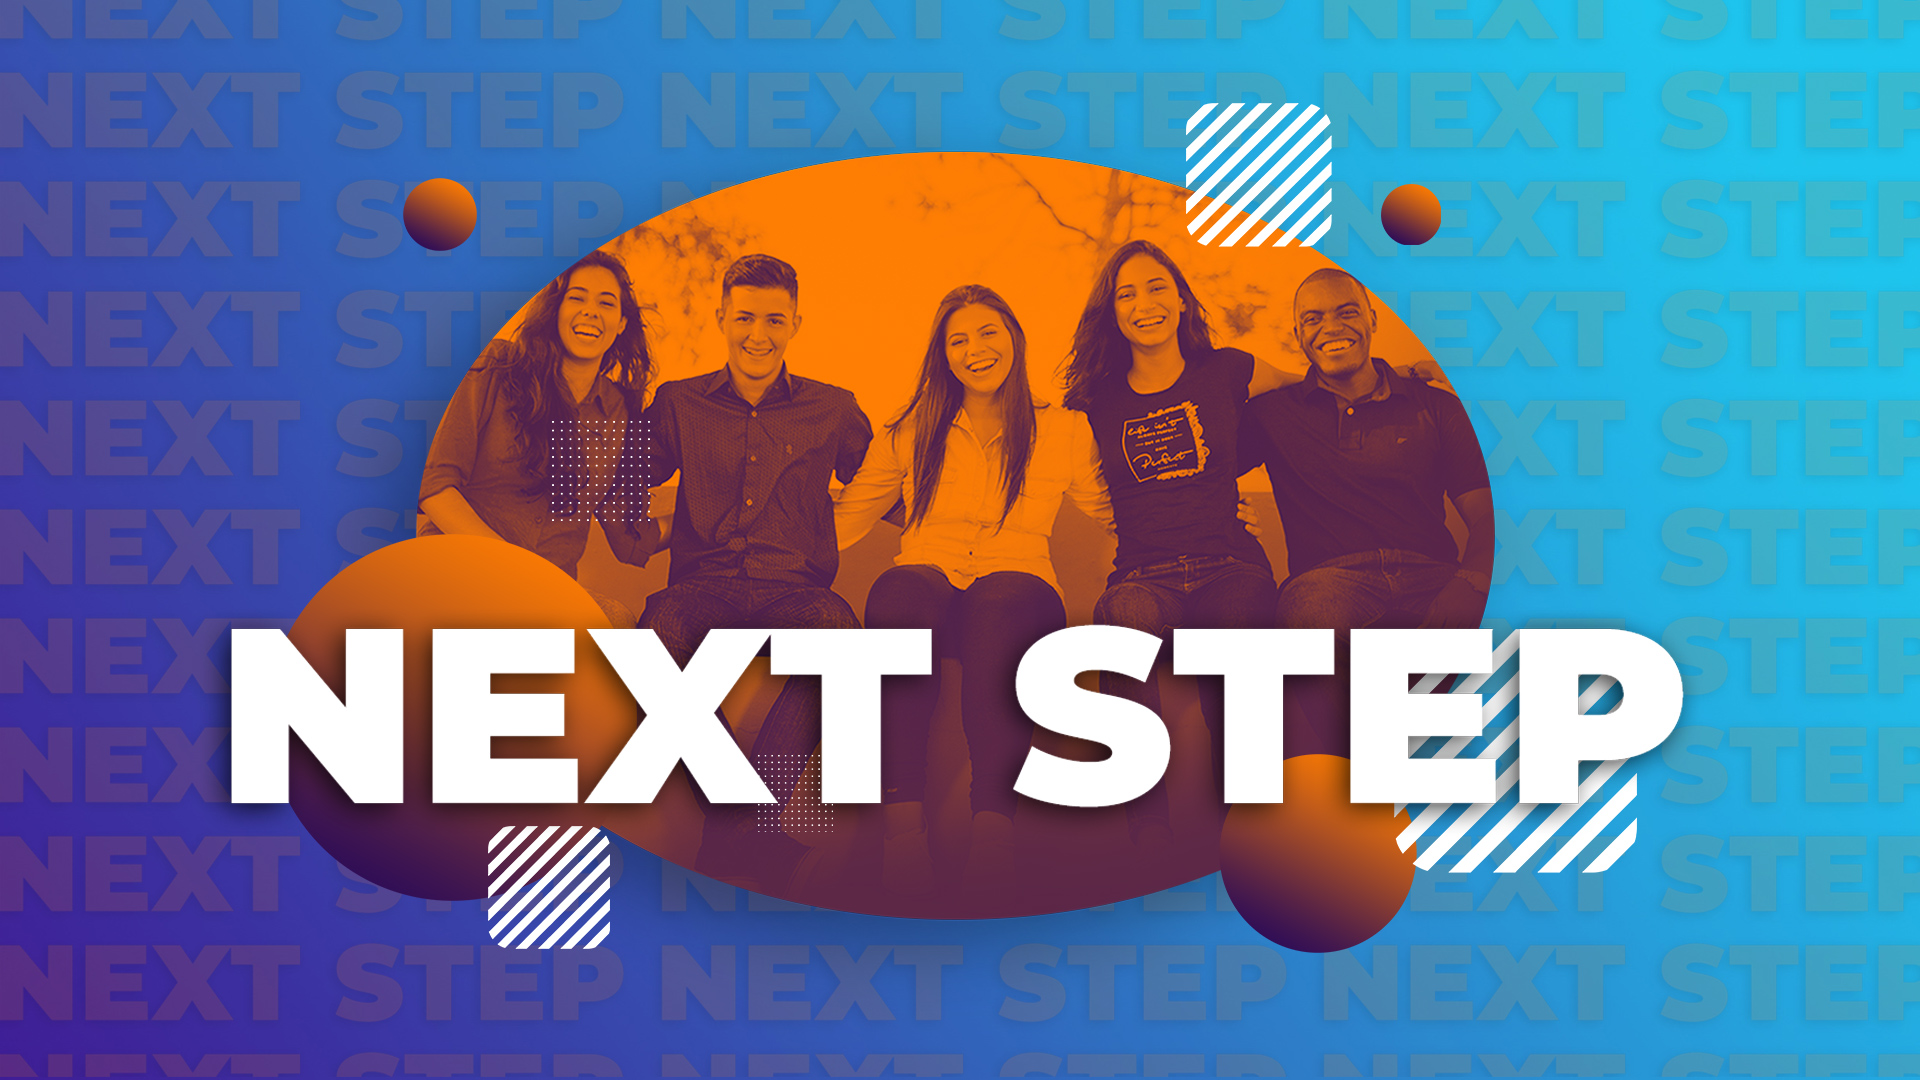 NextStep_Website_1920x1080_V1